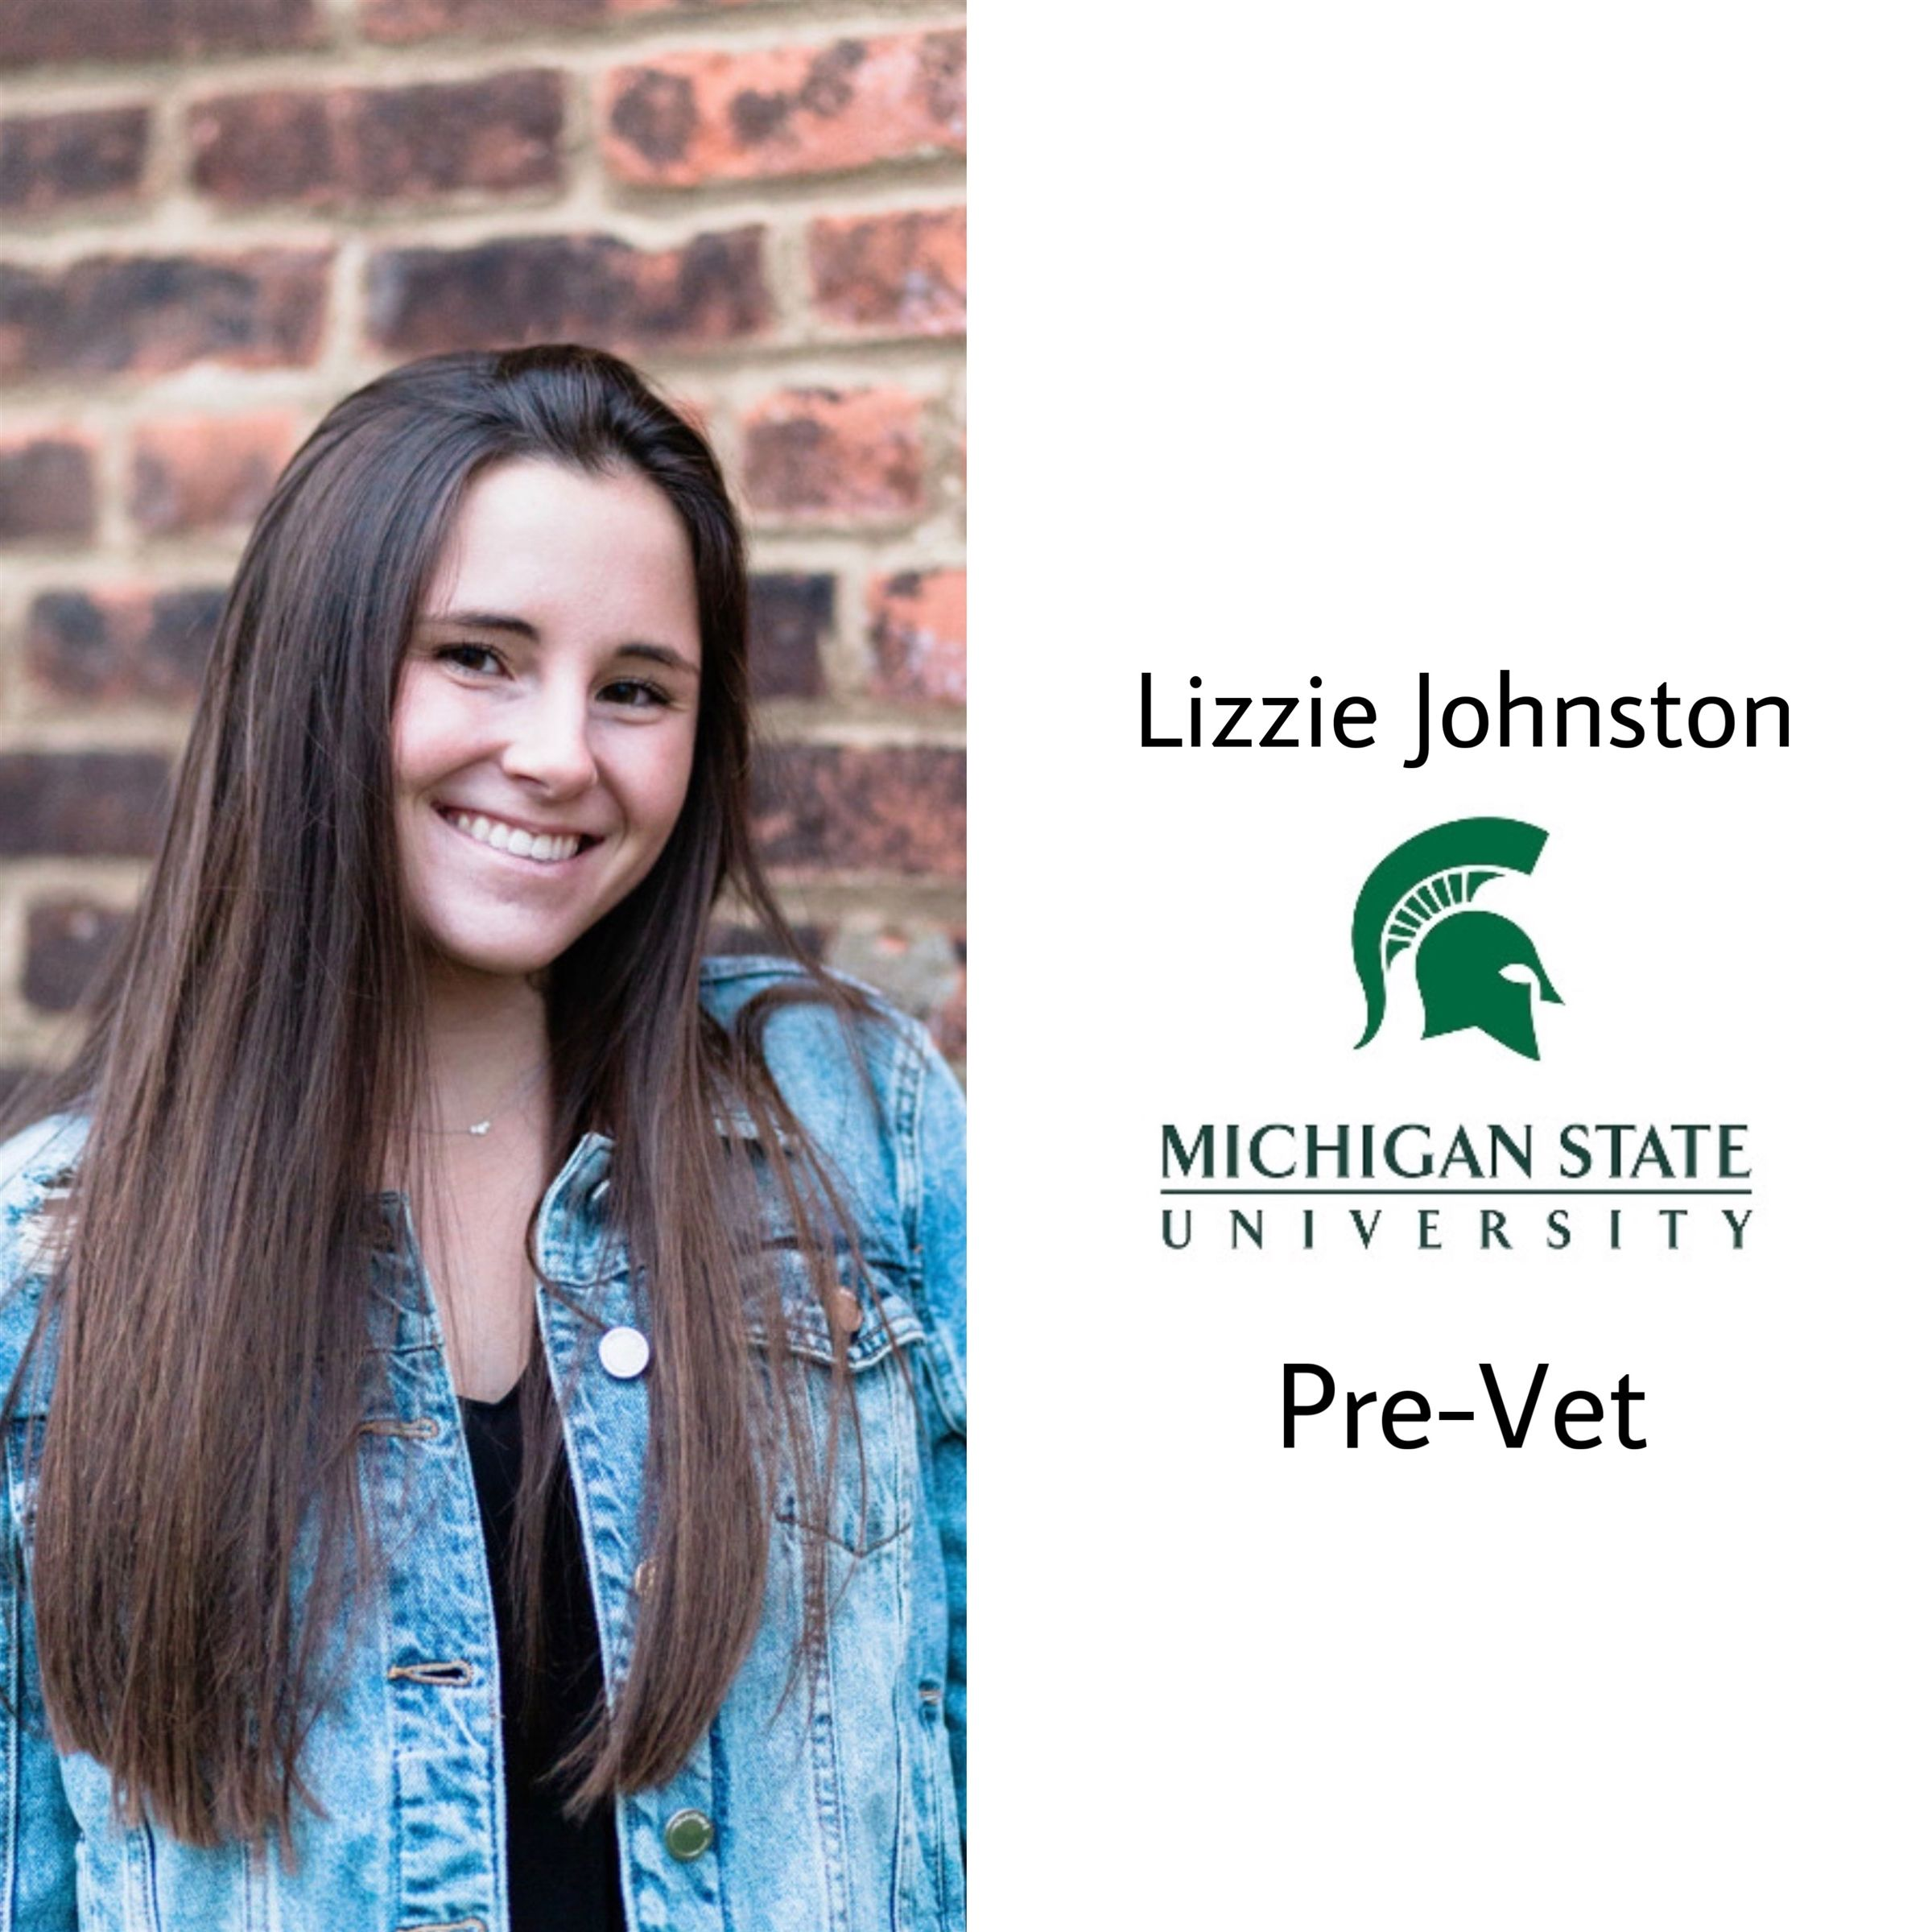 Lizzie is off to Michigan State University!! She will be in the pre-vet program as well as continuing her rowing career! Congrats Liz! Extremely proud :)